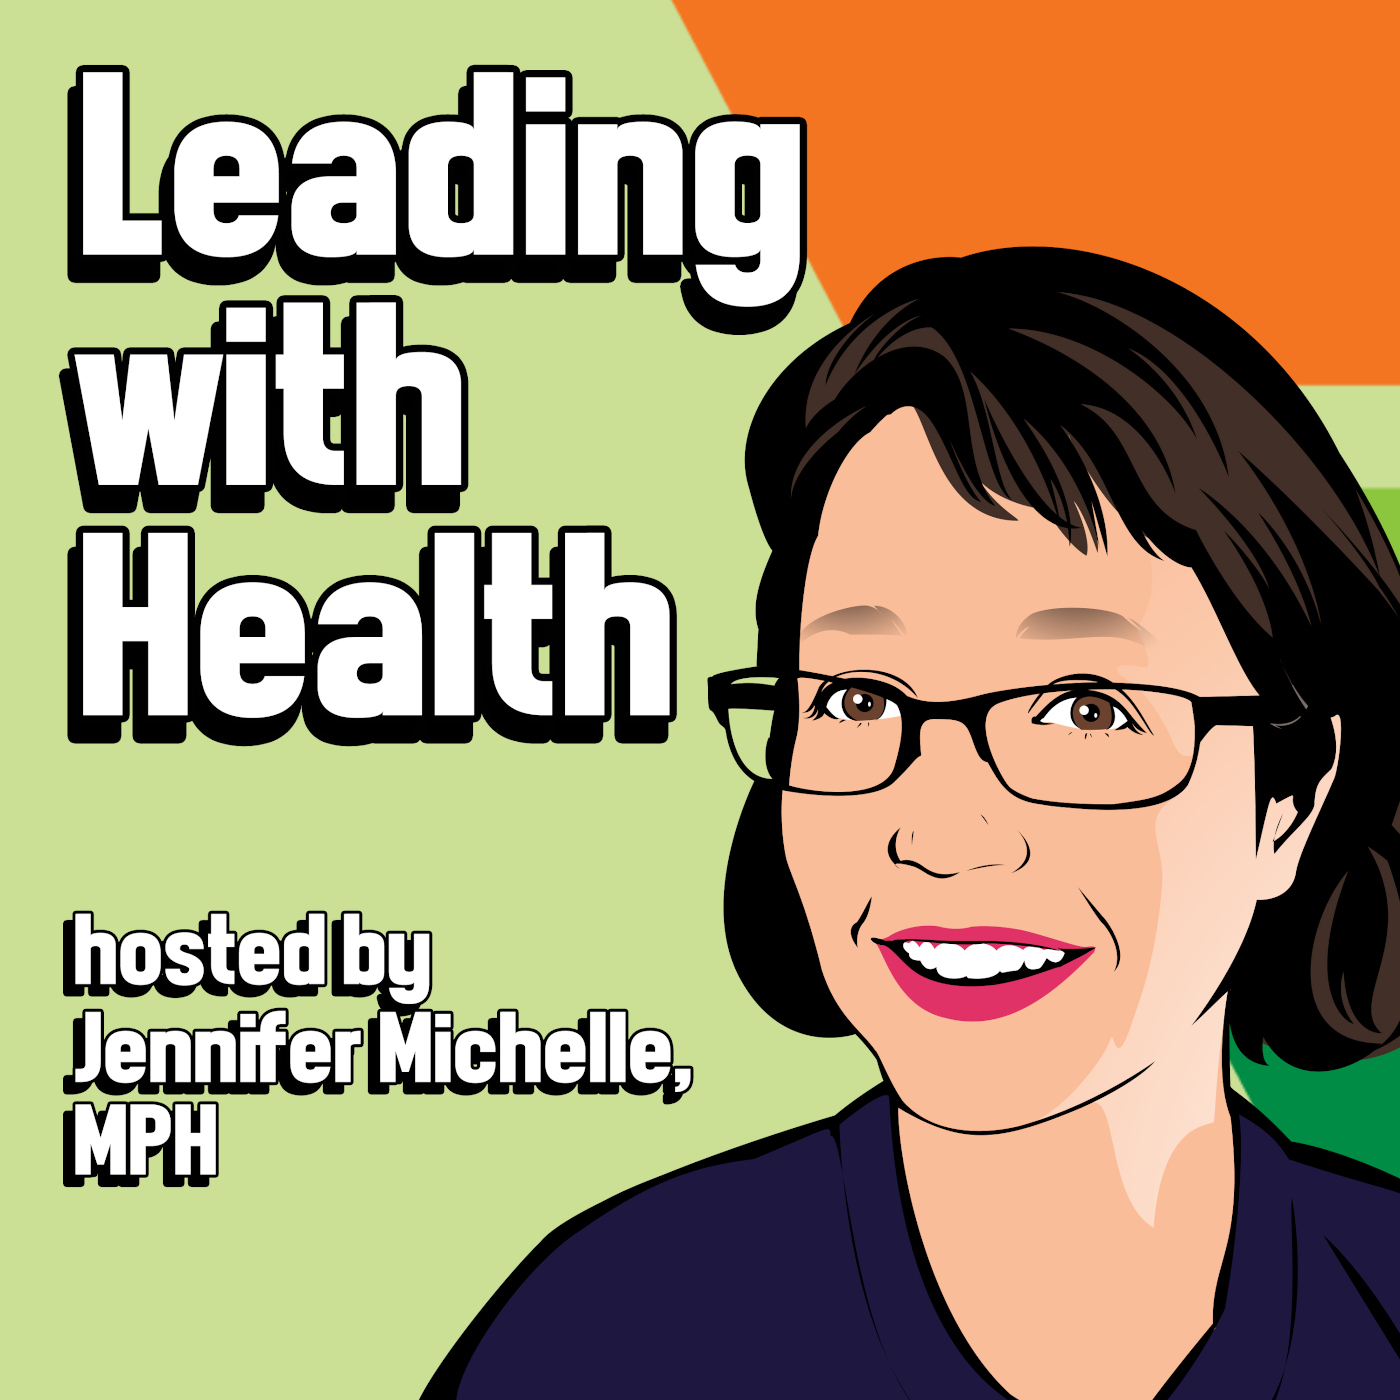 Leading with Health hosted by Jennifer Michelle, MPH